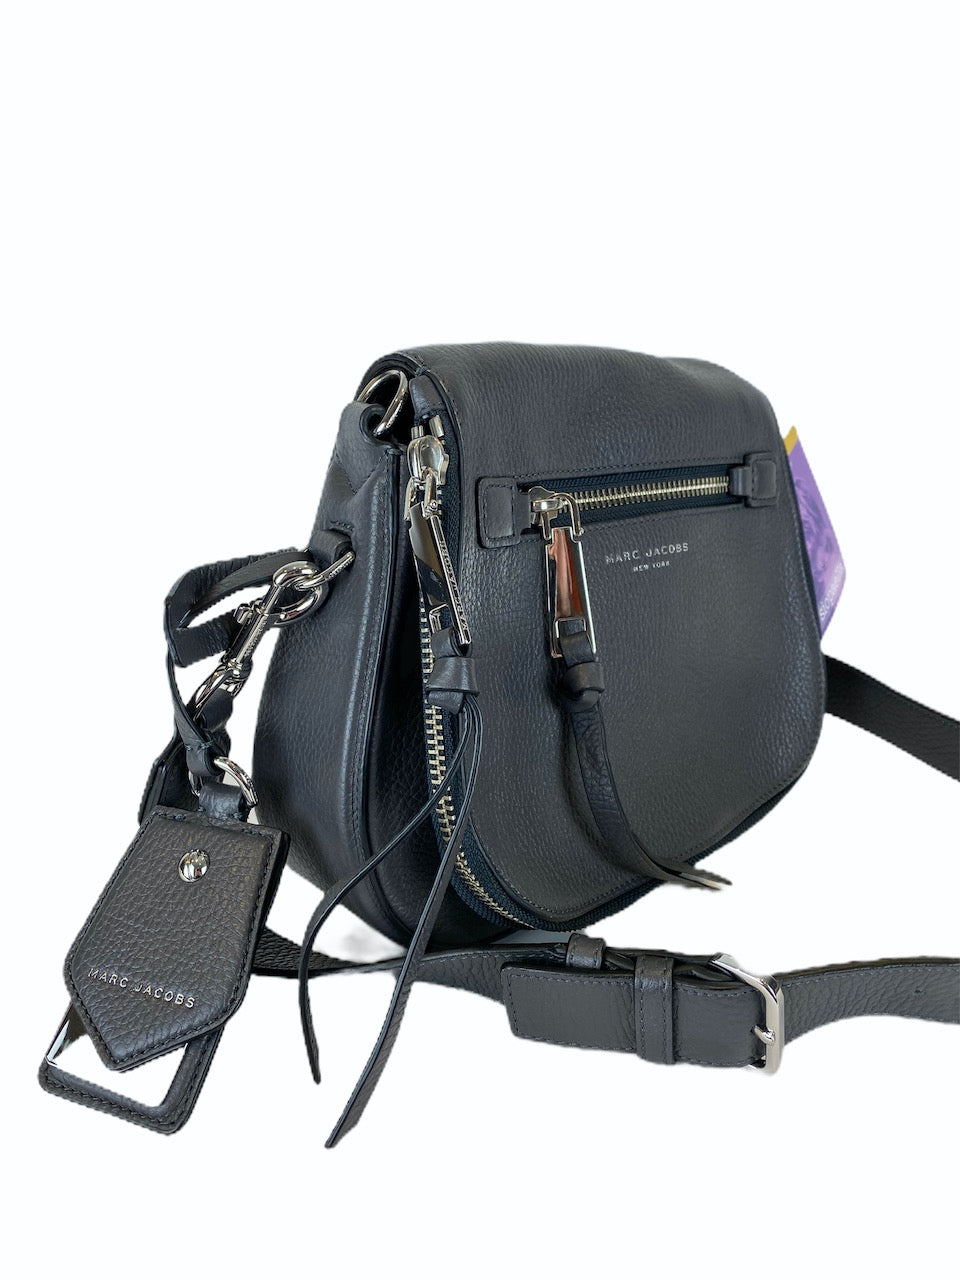 Marc Jacobs Grey Leather Recruit Crossbody - As Seen on Instagram 2/9/20